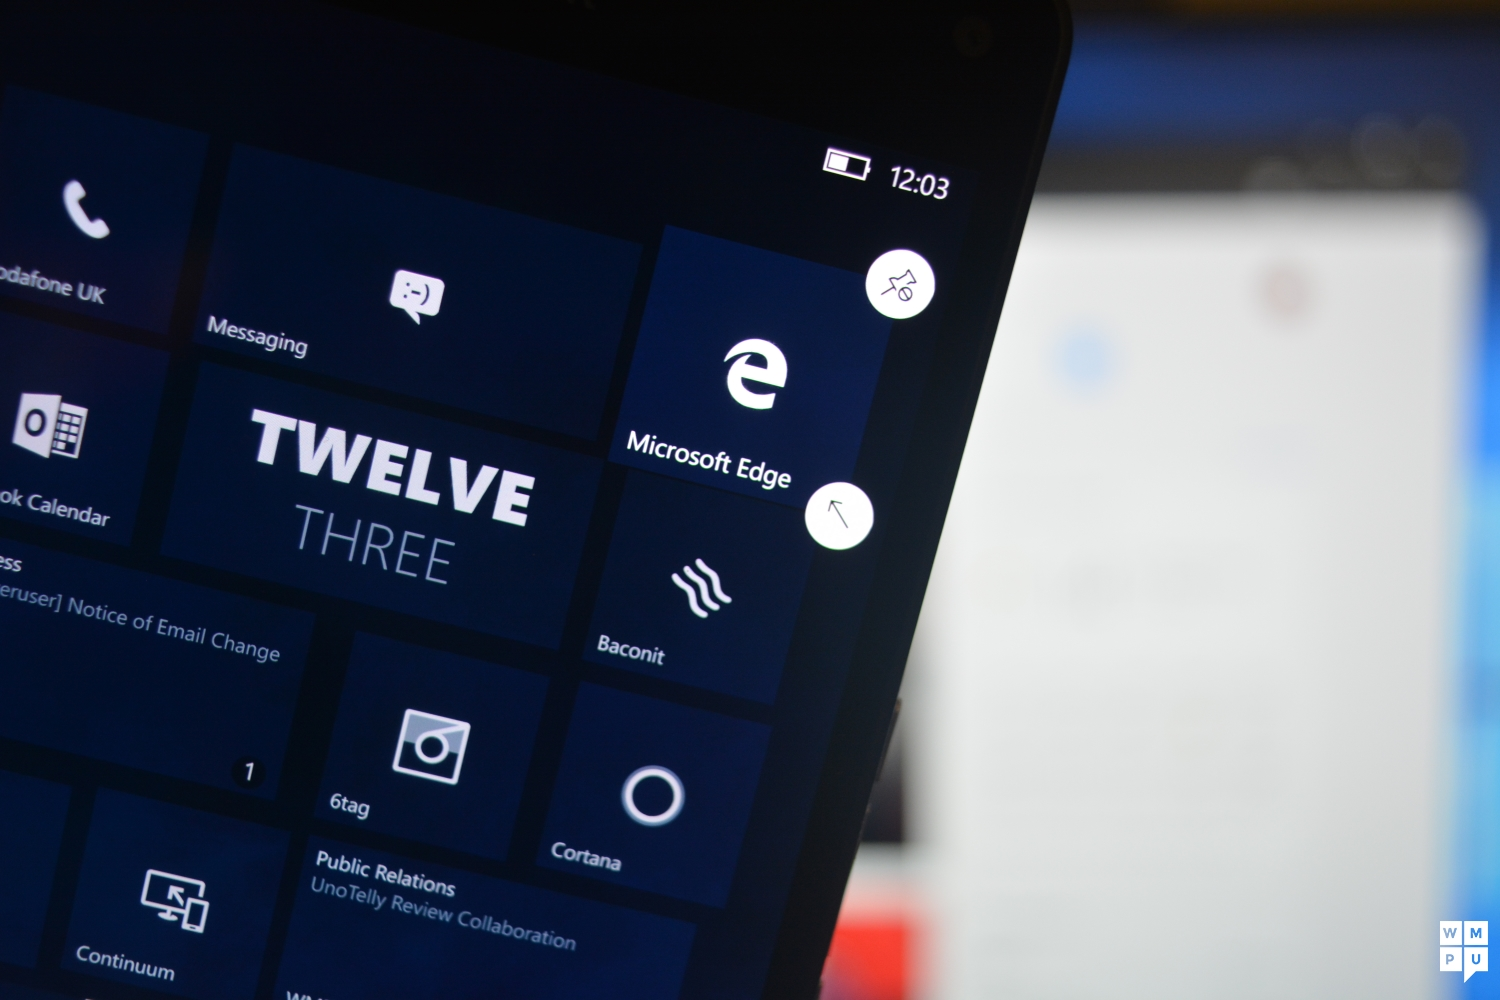 Just Like On Windows 10 For Desktop Pcs And Tablets Microsoft Has Given Internet Explorer The Boot Phone Replaced It With A Nice